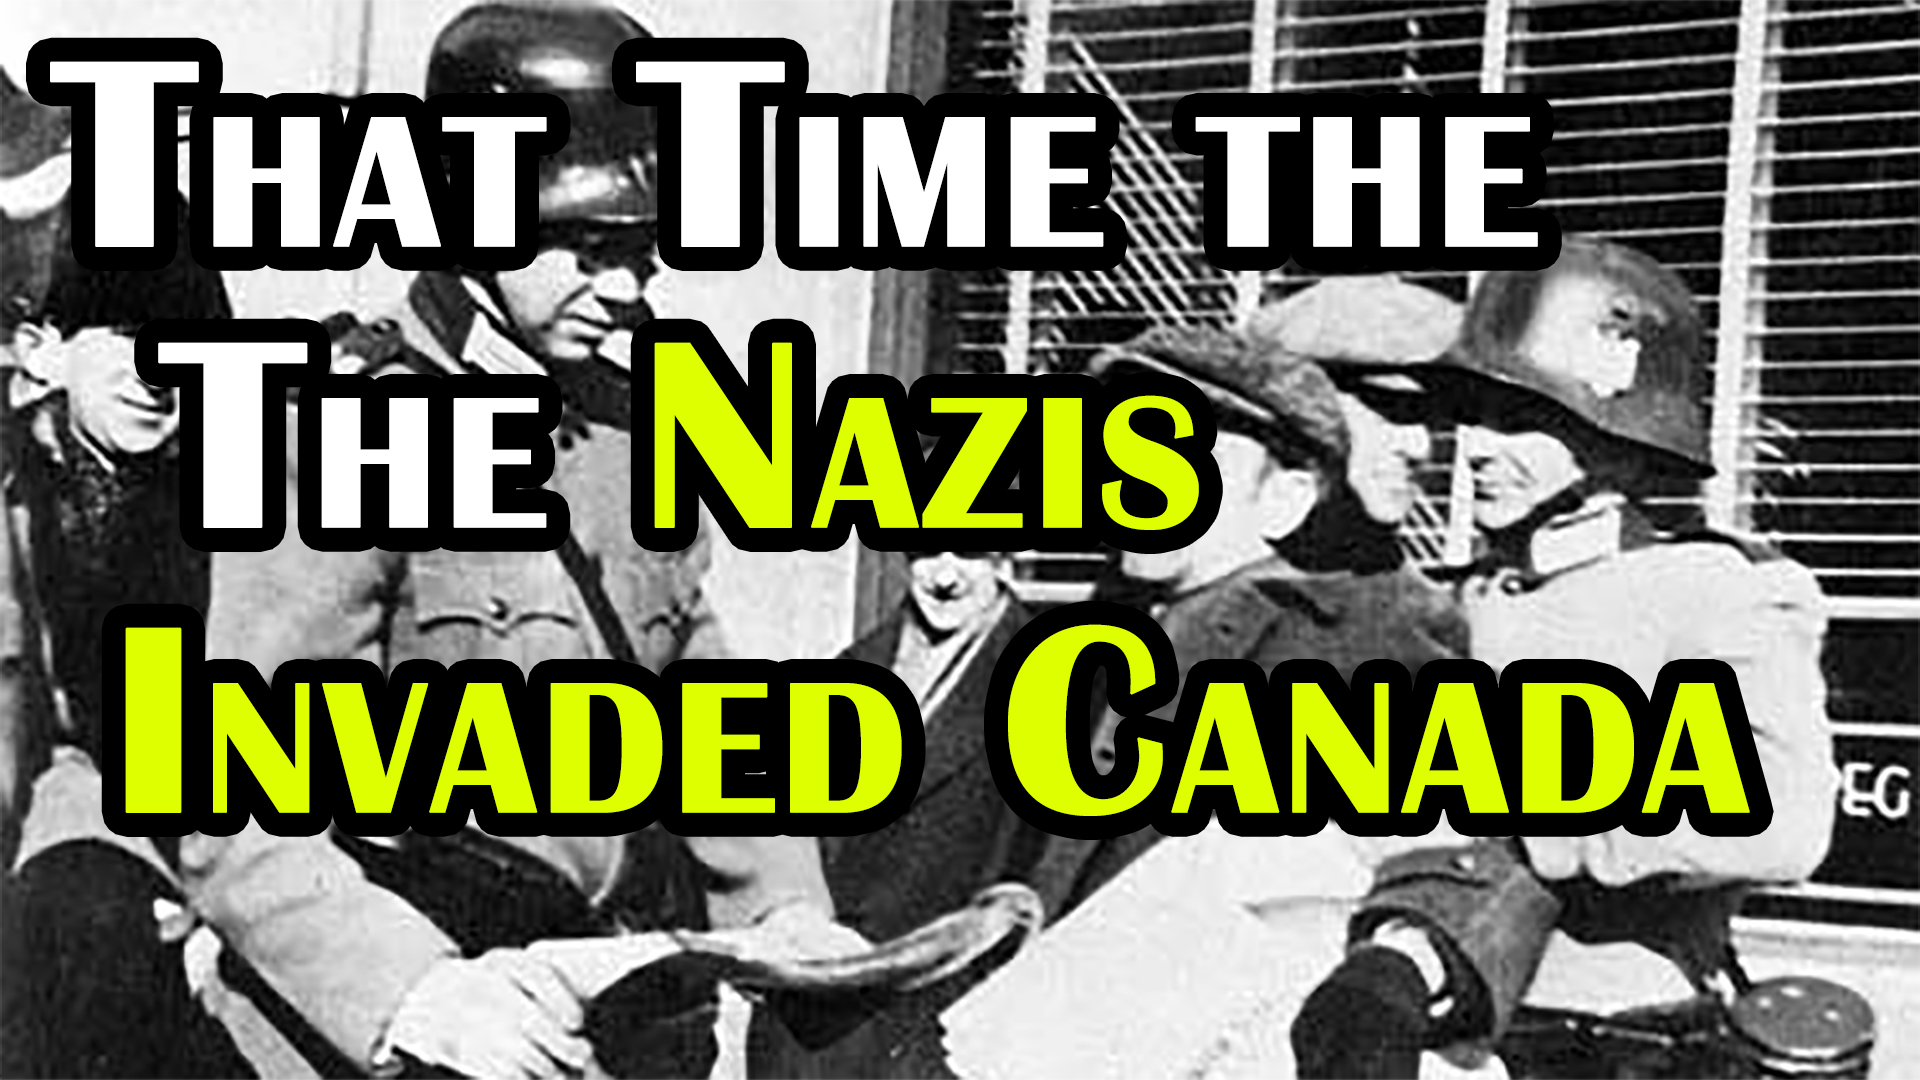 That Time a Canadian City Pretended to be Invaded by Nazis